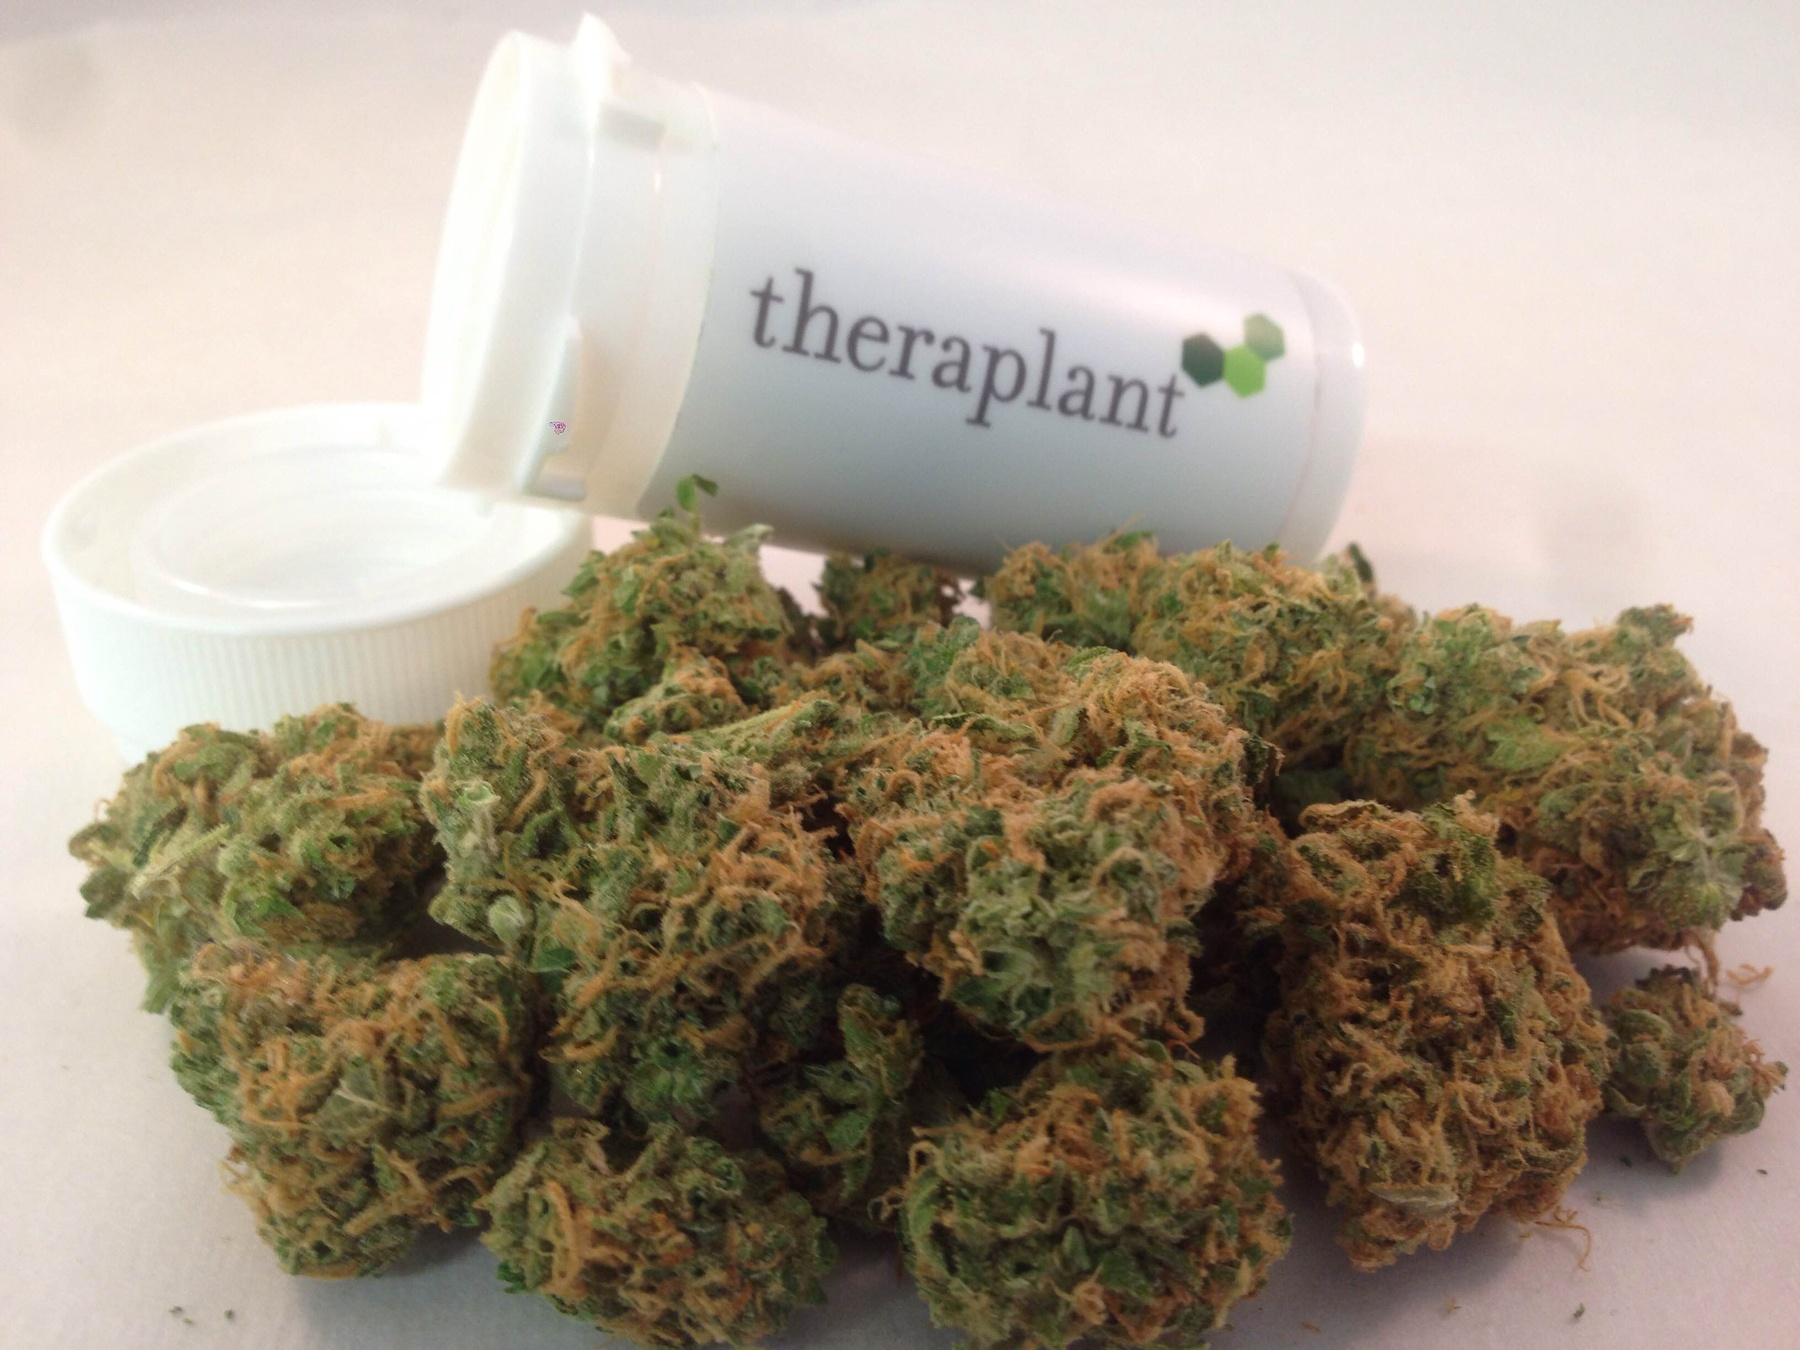 Theraplant 15033 Product image